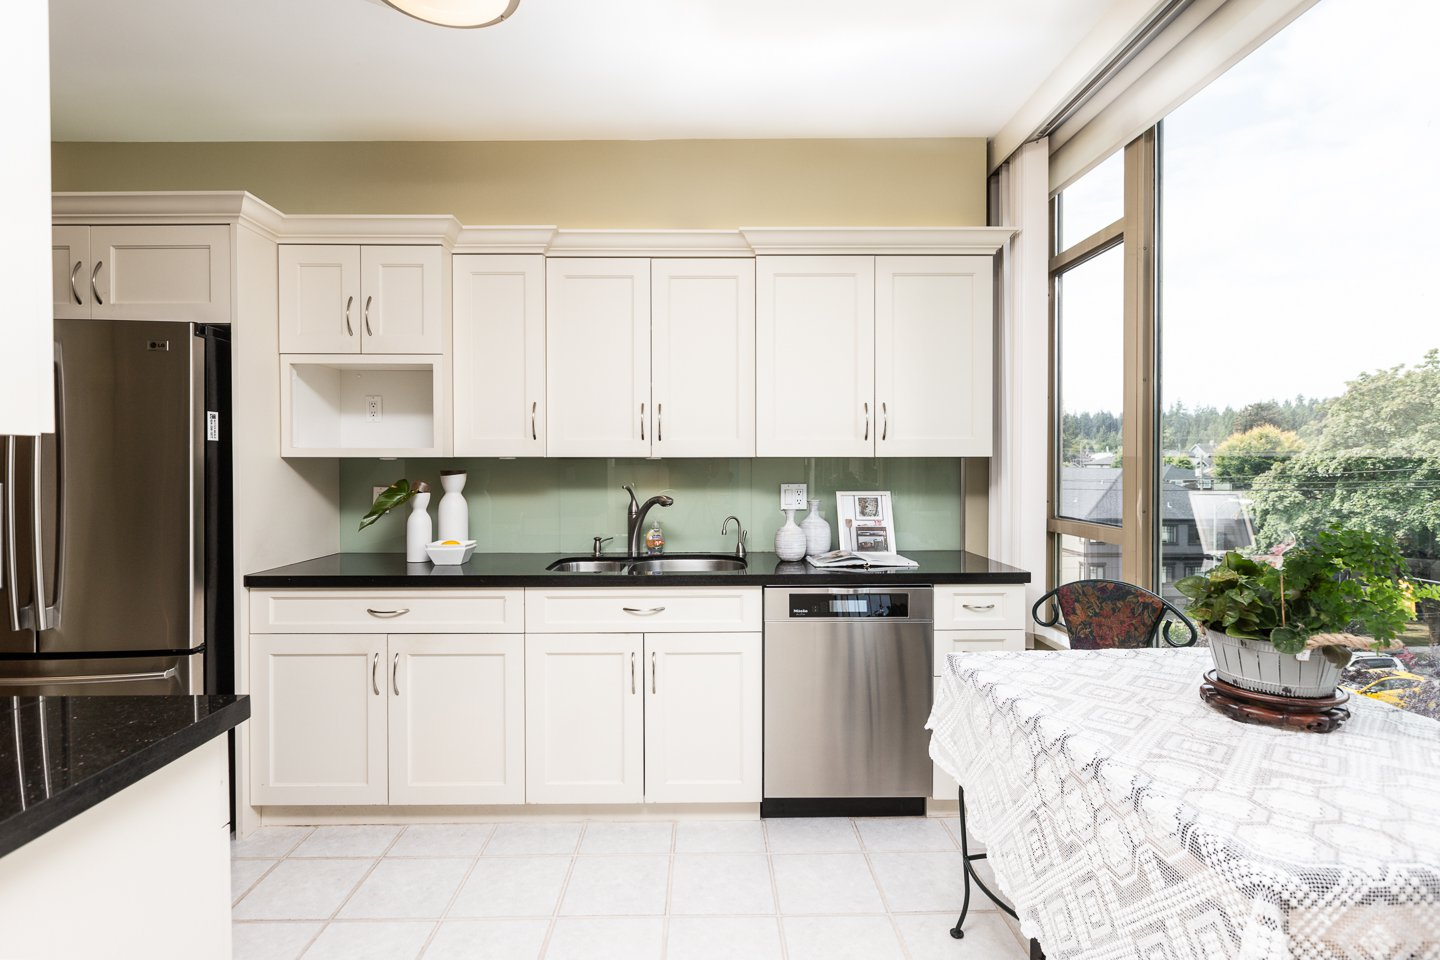 Photo 6: Photos: 401-2580 TOLMIE ST in VANCOUVER: Point Grey Condo for sale (Vancouver West)  : MLS®# R2397003